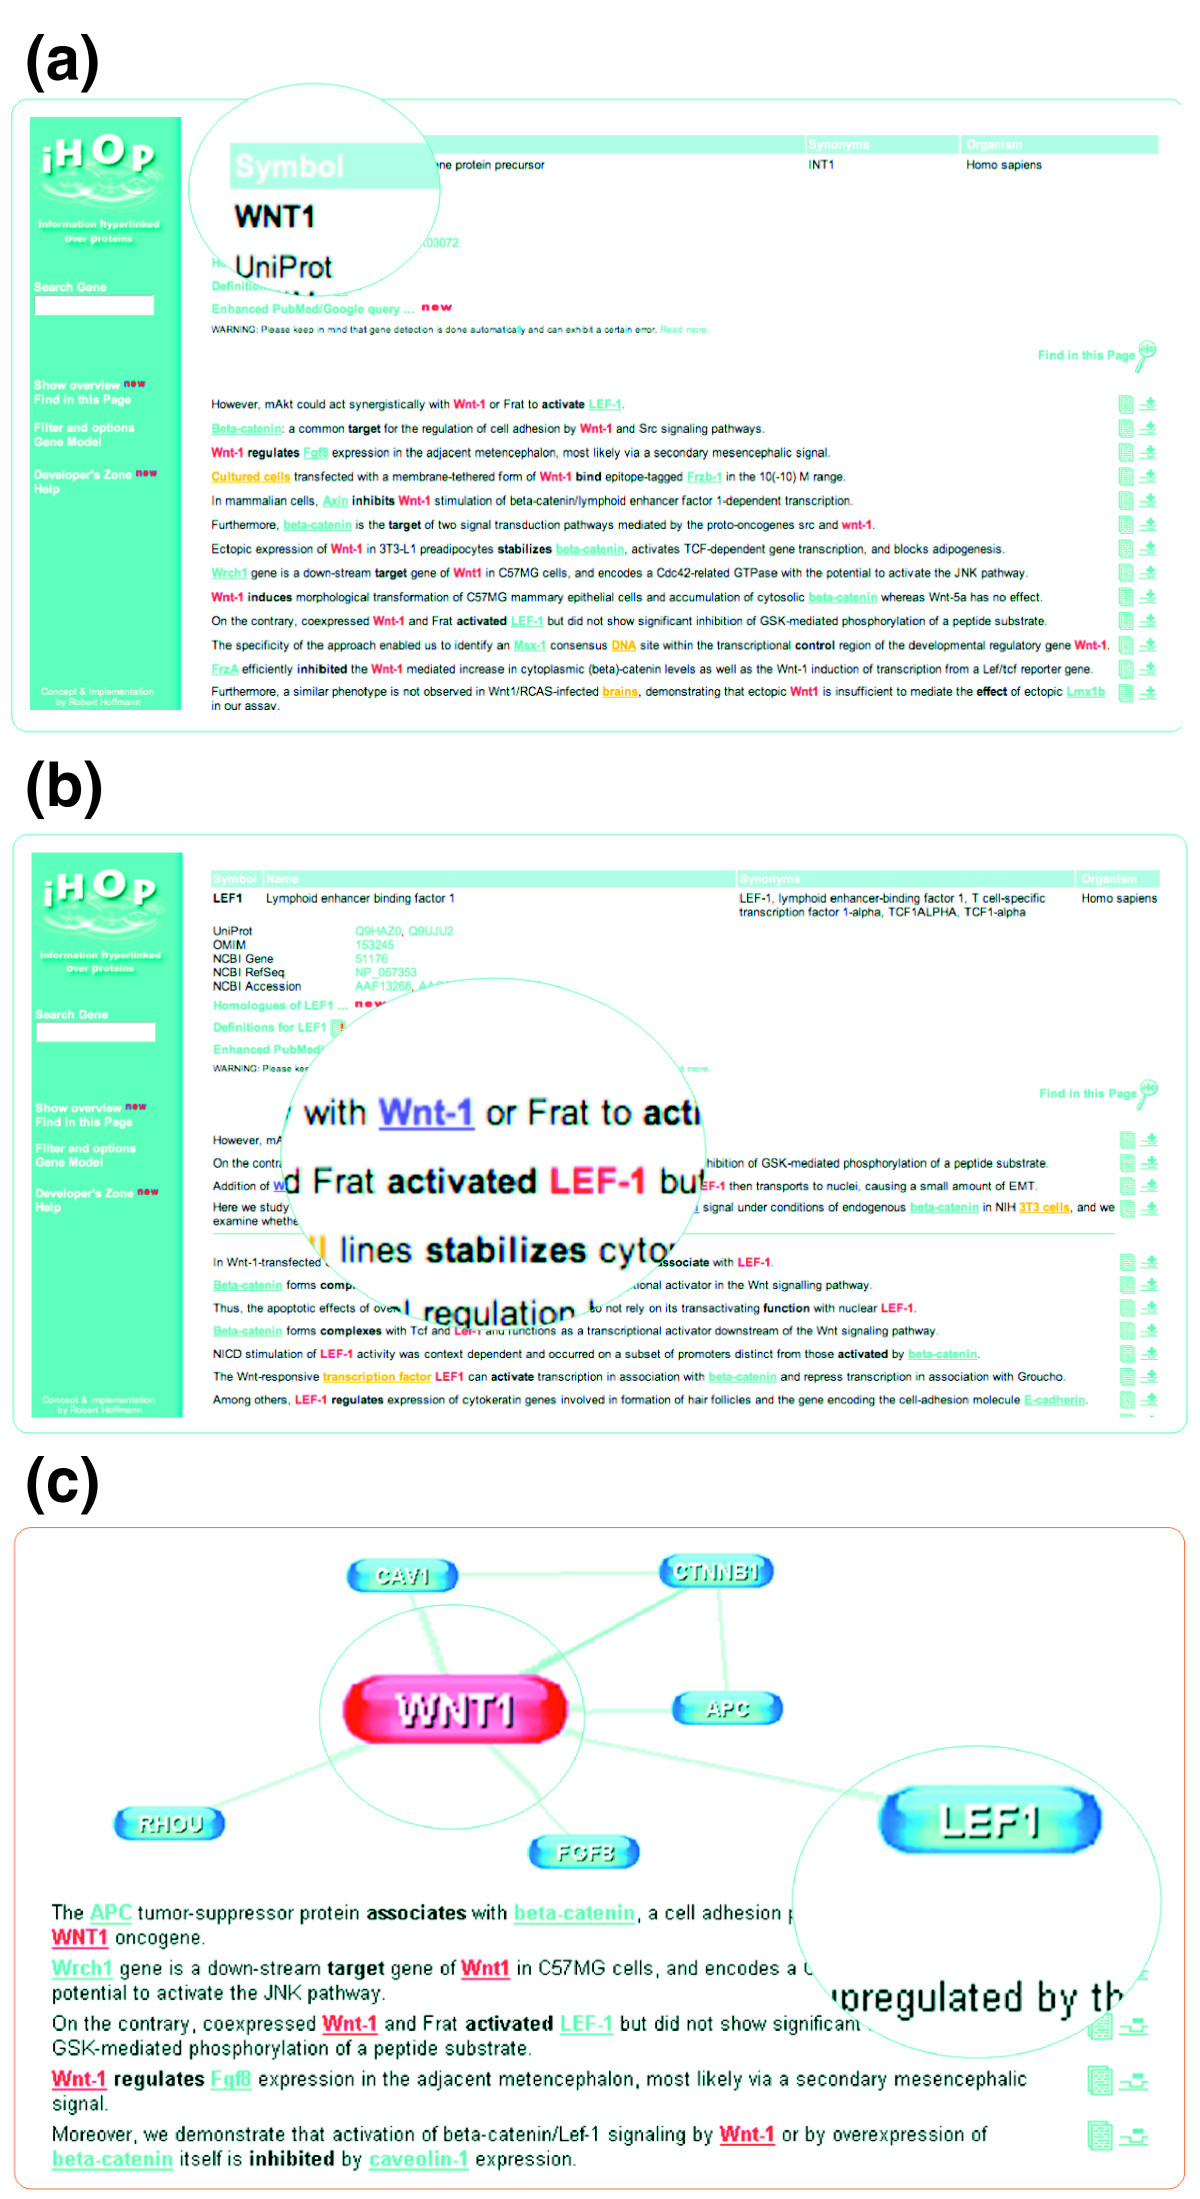 http://static-content.springer.com/image/art%3A10.1186%2Fgb-2005-6-7-224/MediaObjects/13059_2005_Article_968_Fig2_HTML.jpg